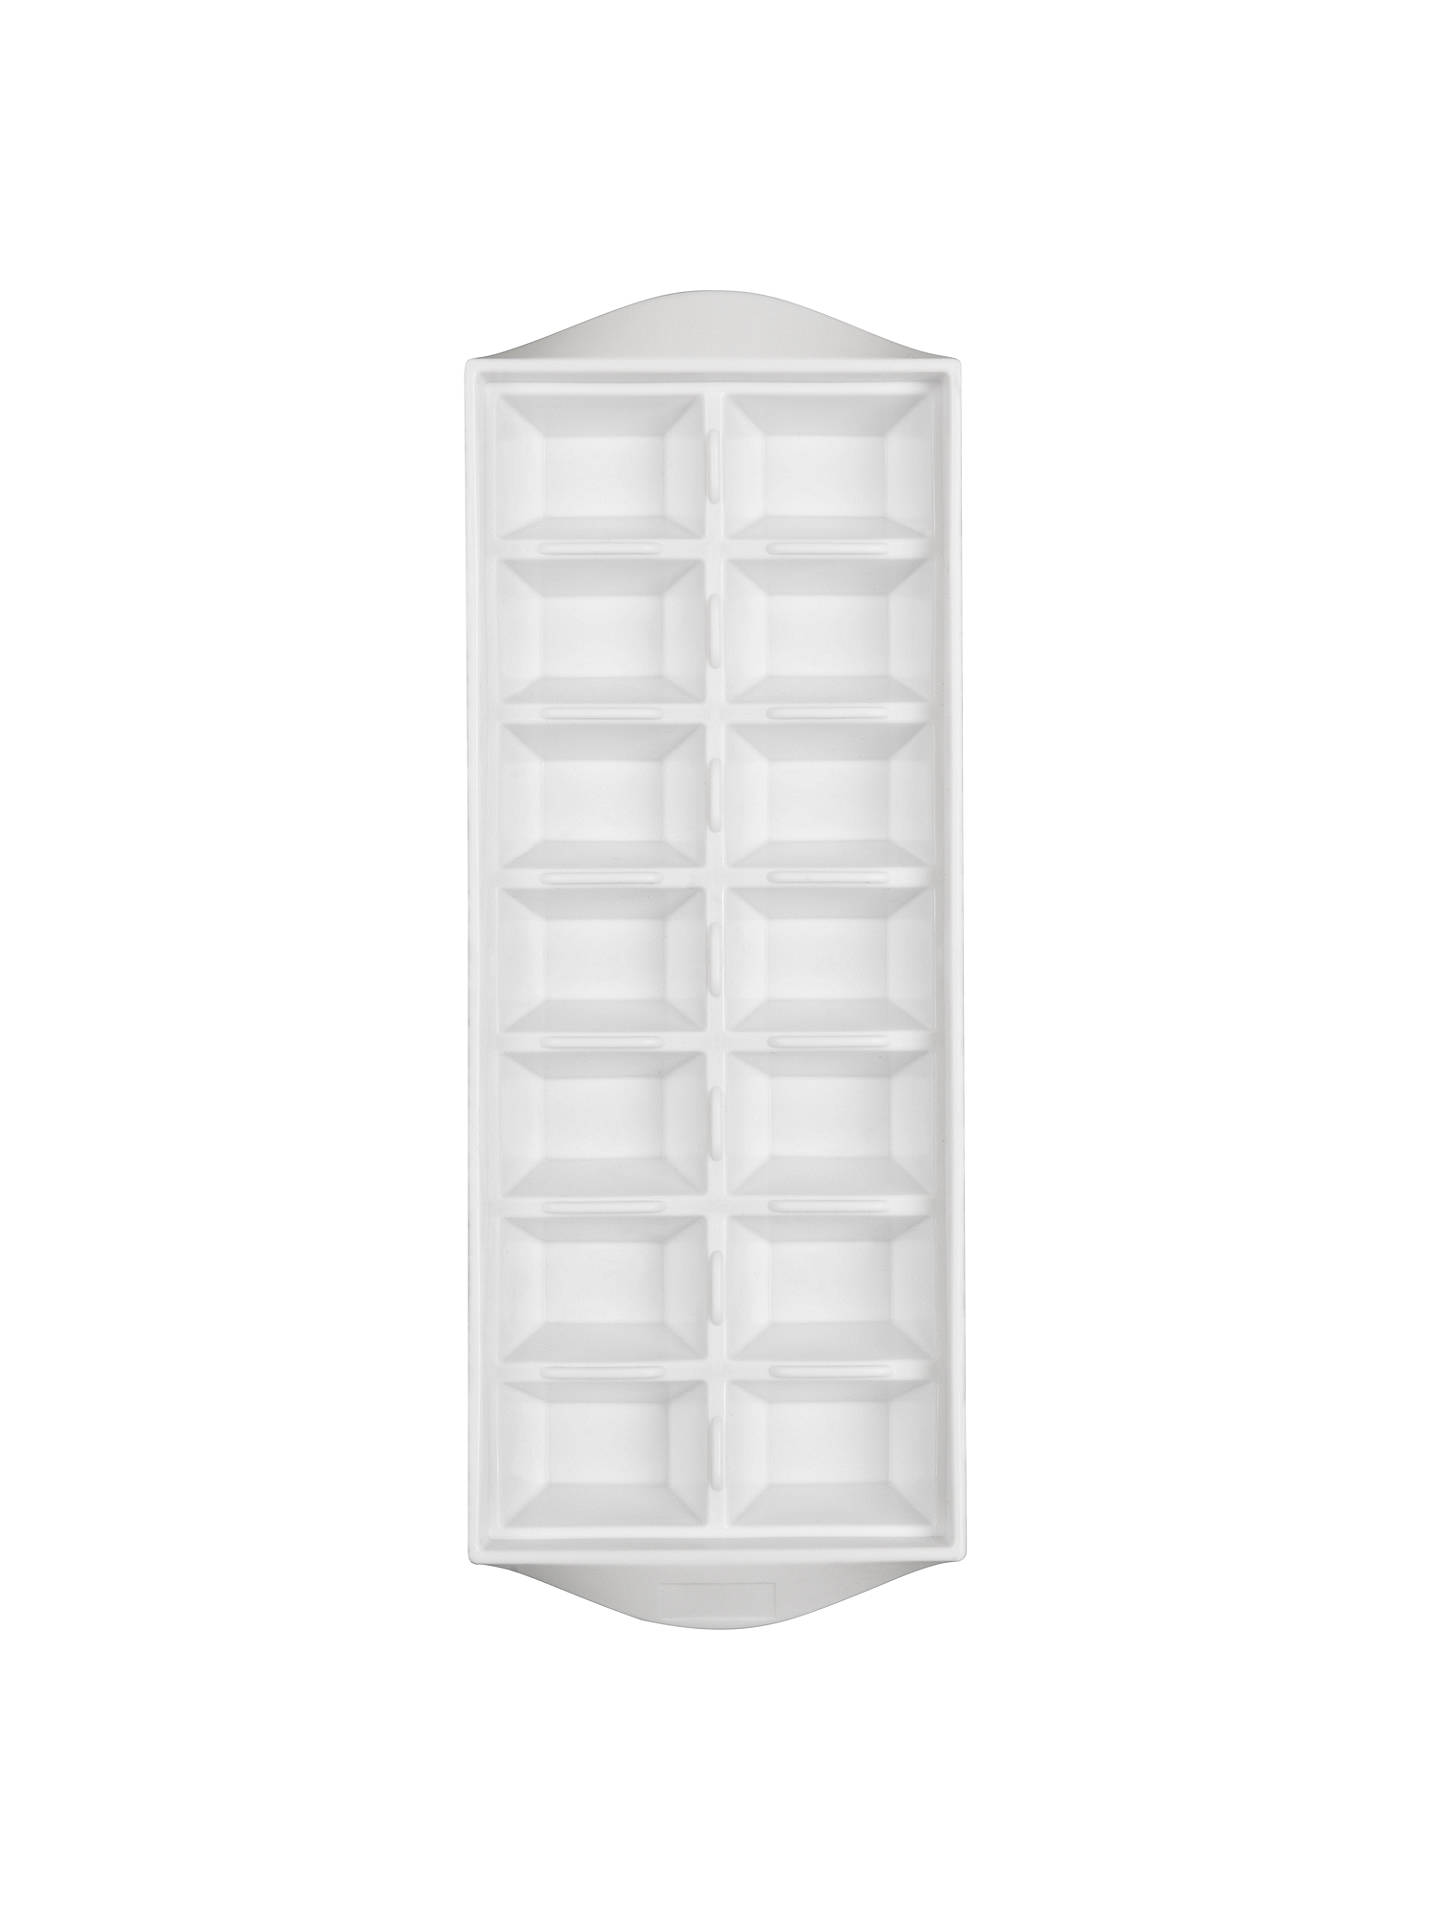 Buy John Lewis & Partners Ice Cube Trays, Set of 2 Online at johnlewis.com